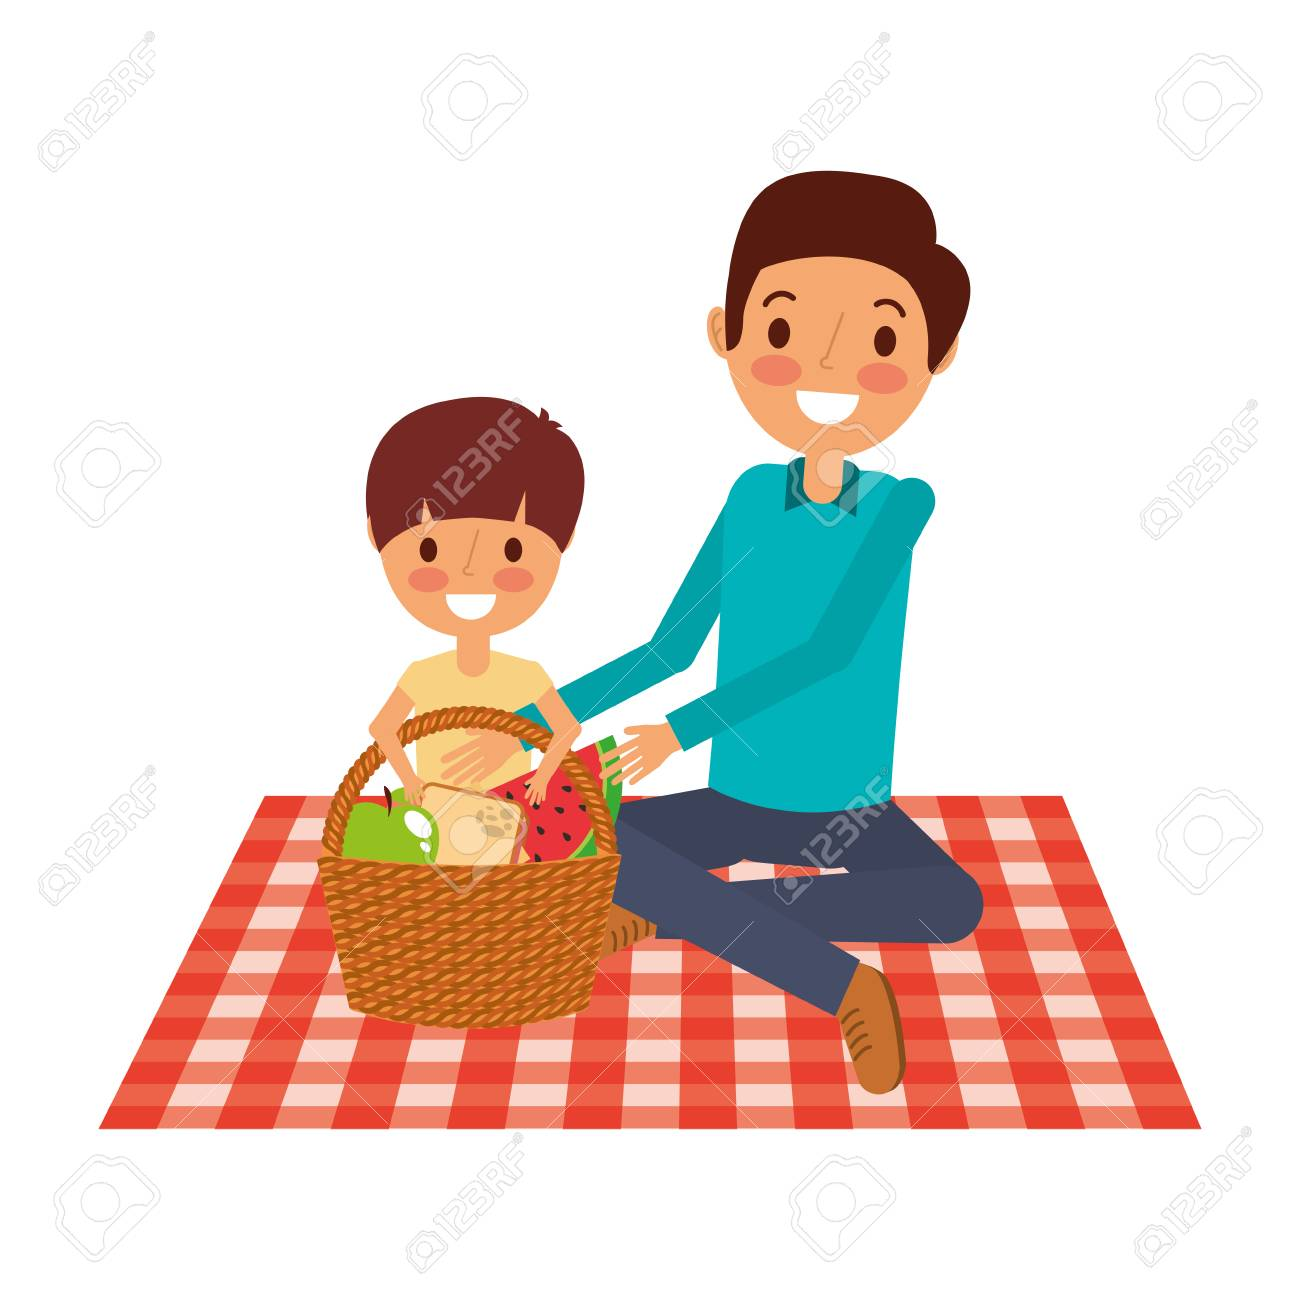 father with his son sitting on blanket with food basket vector illustration - 91218672